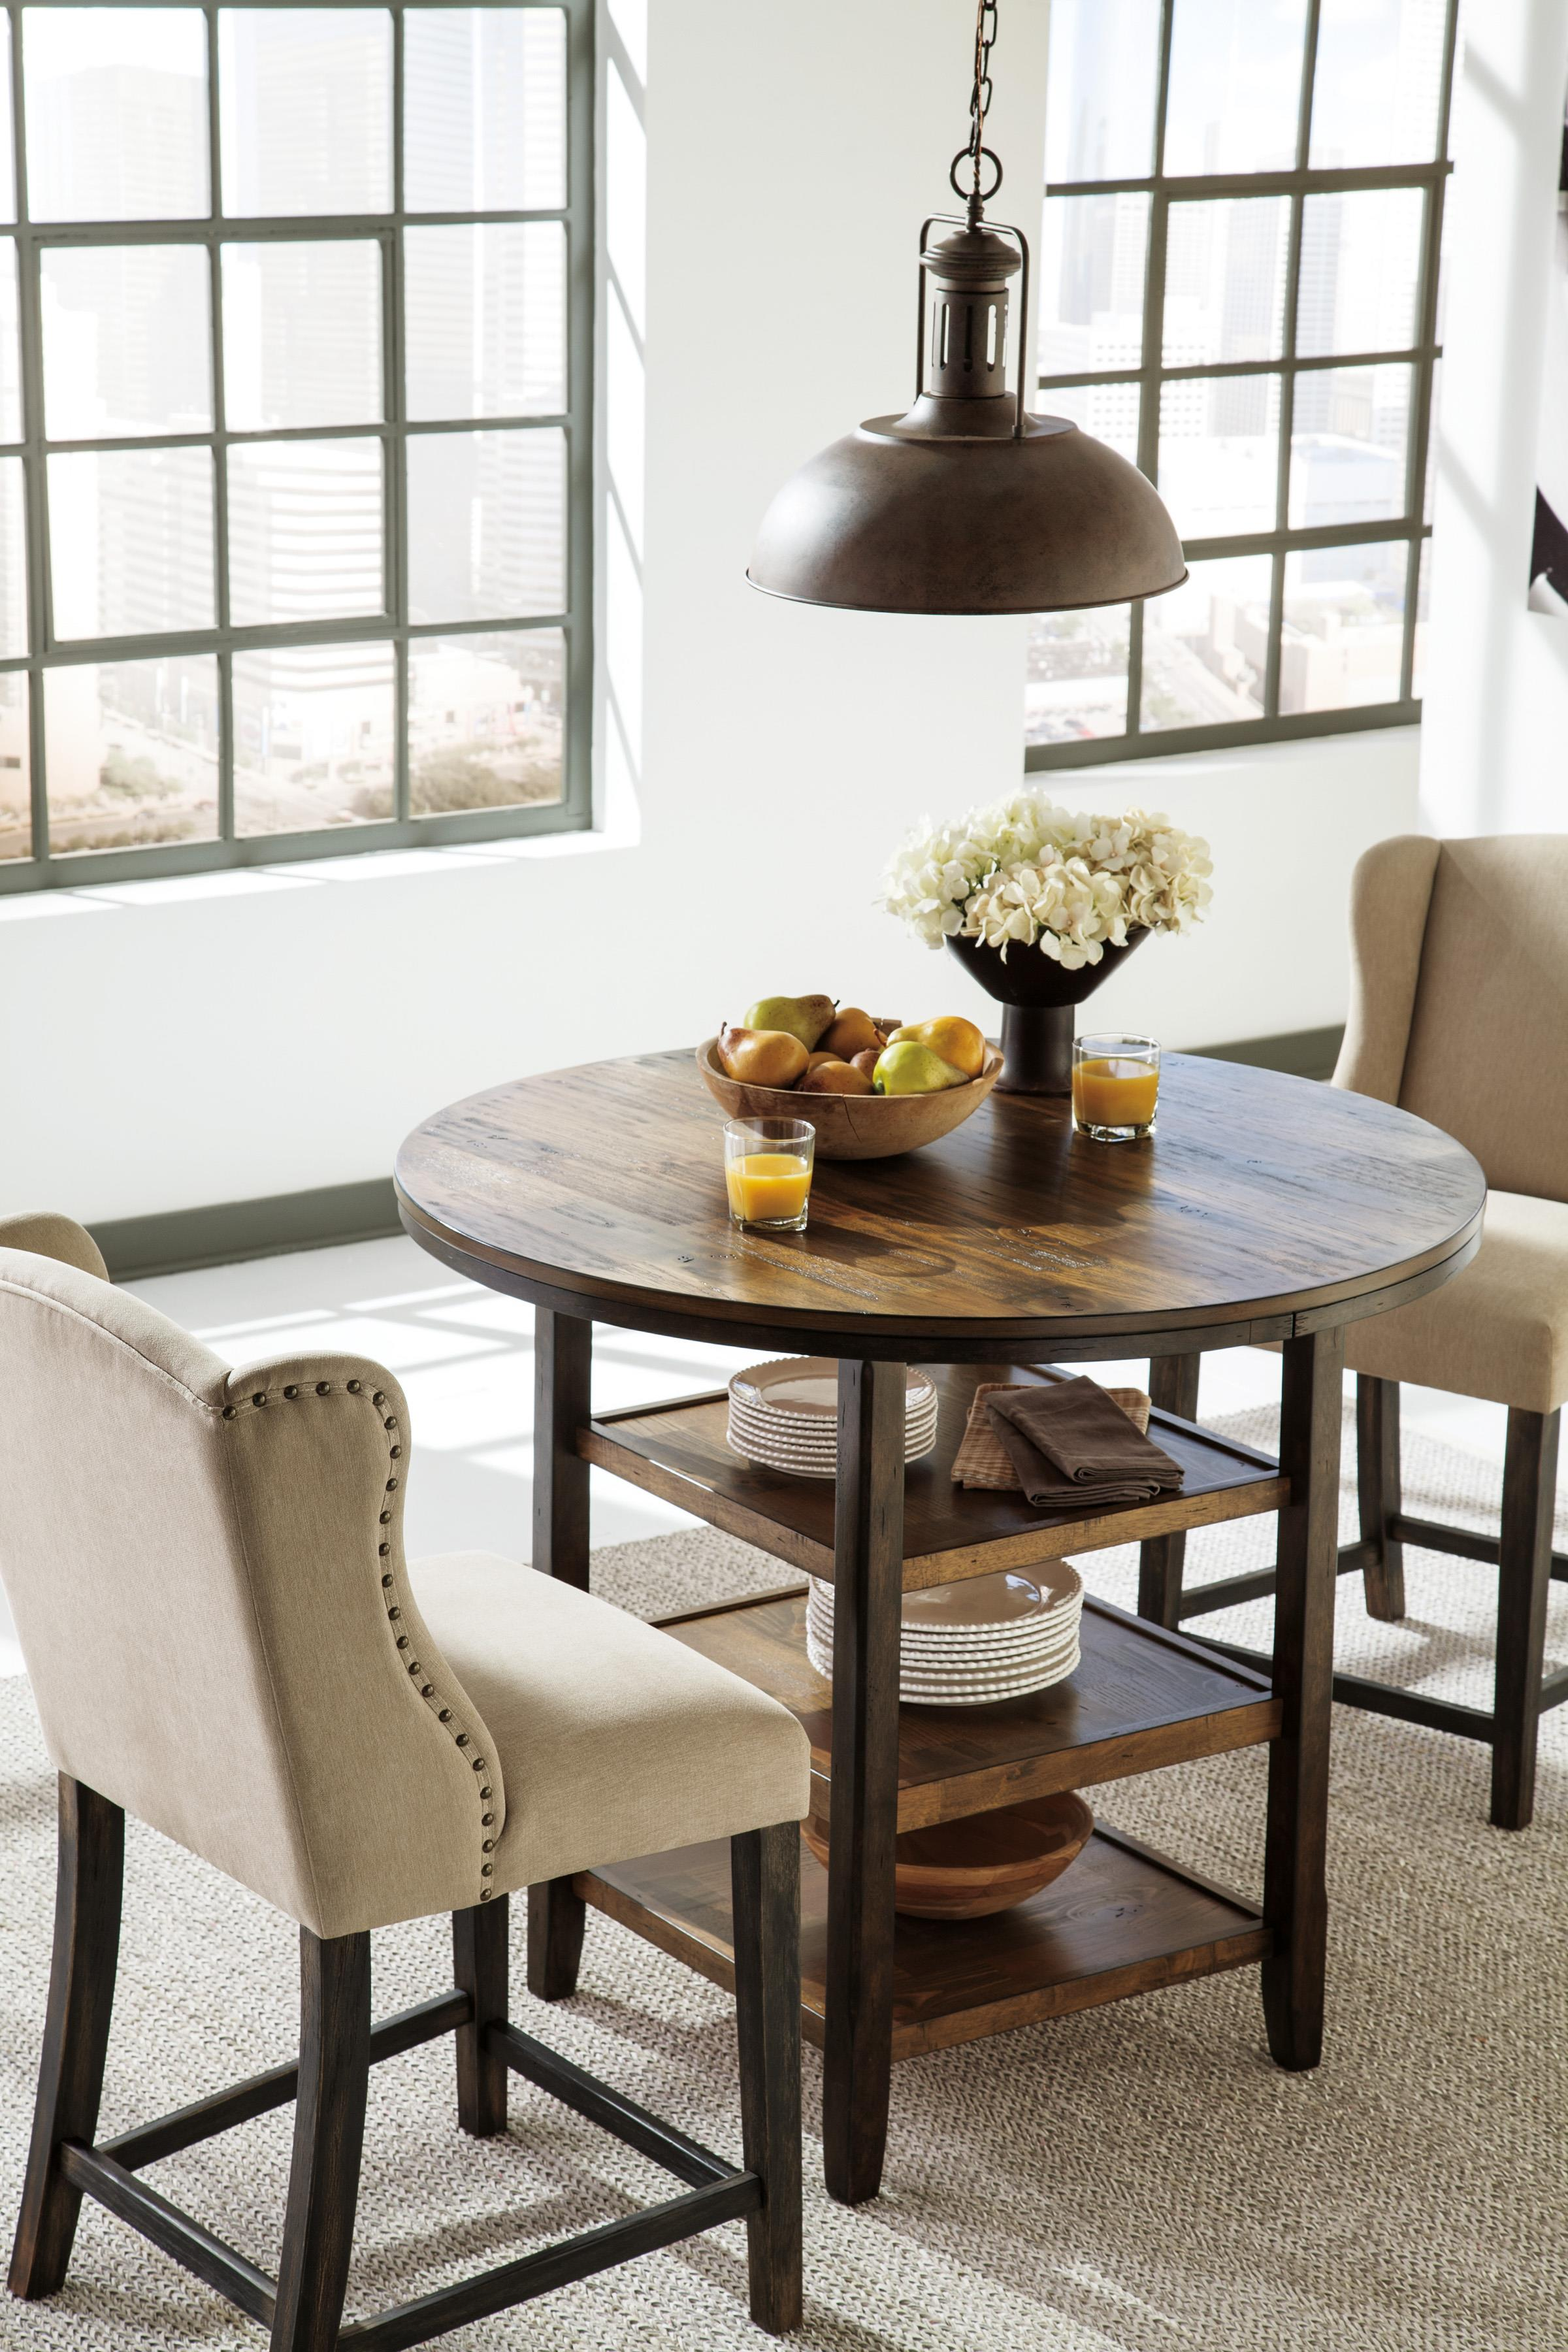 Round Dining Room Counter Table with 3 Shelves